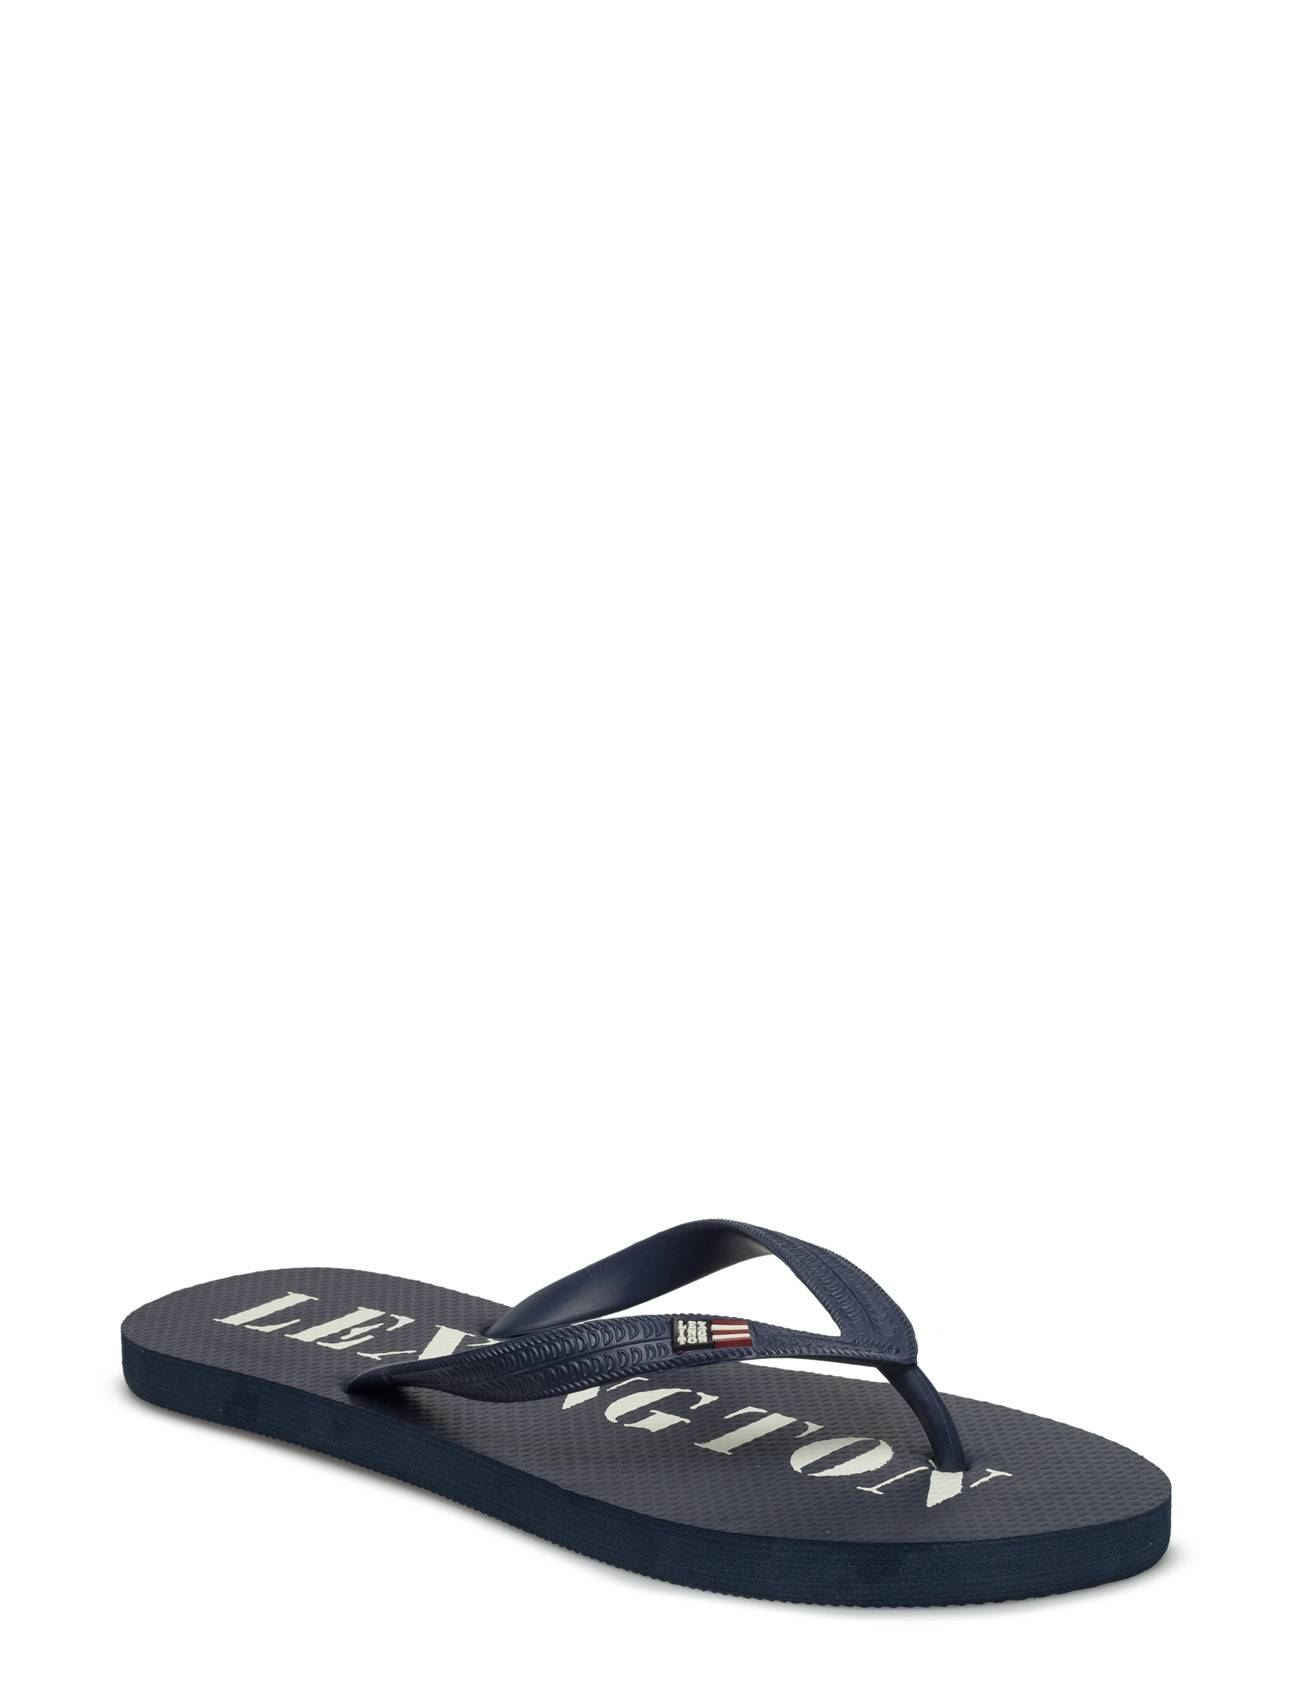 Lexington Company Orlando Flip Flops